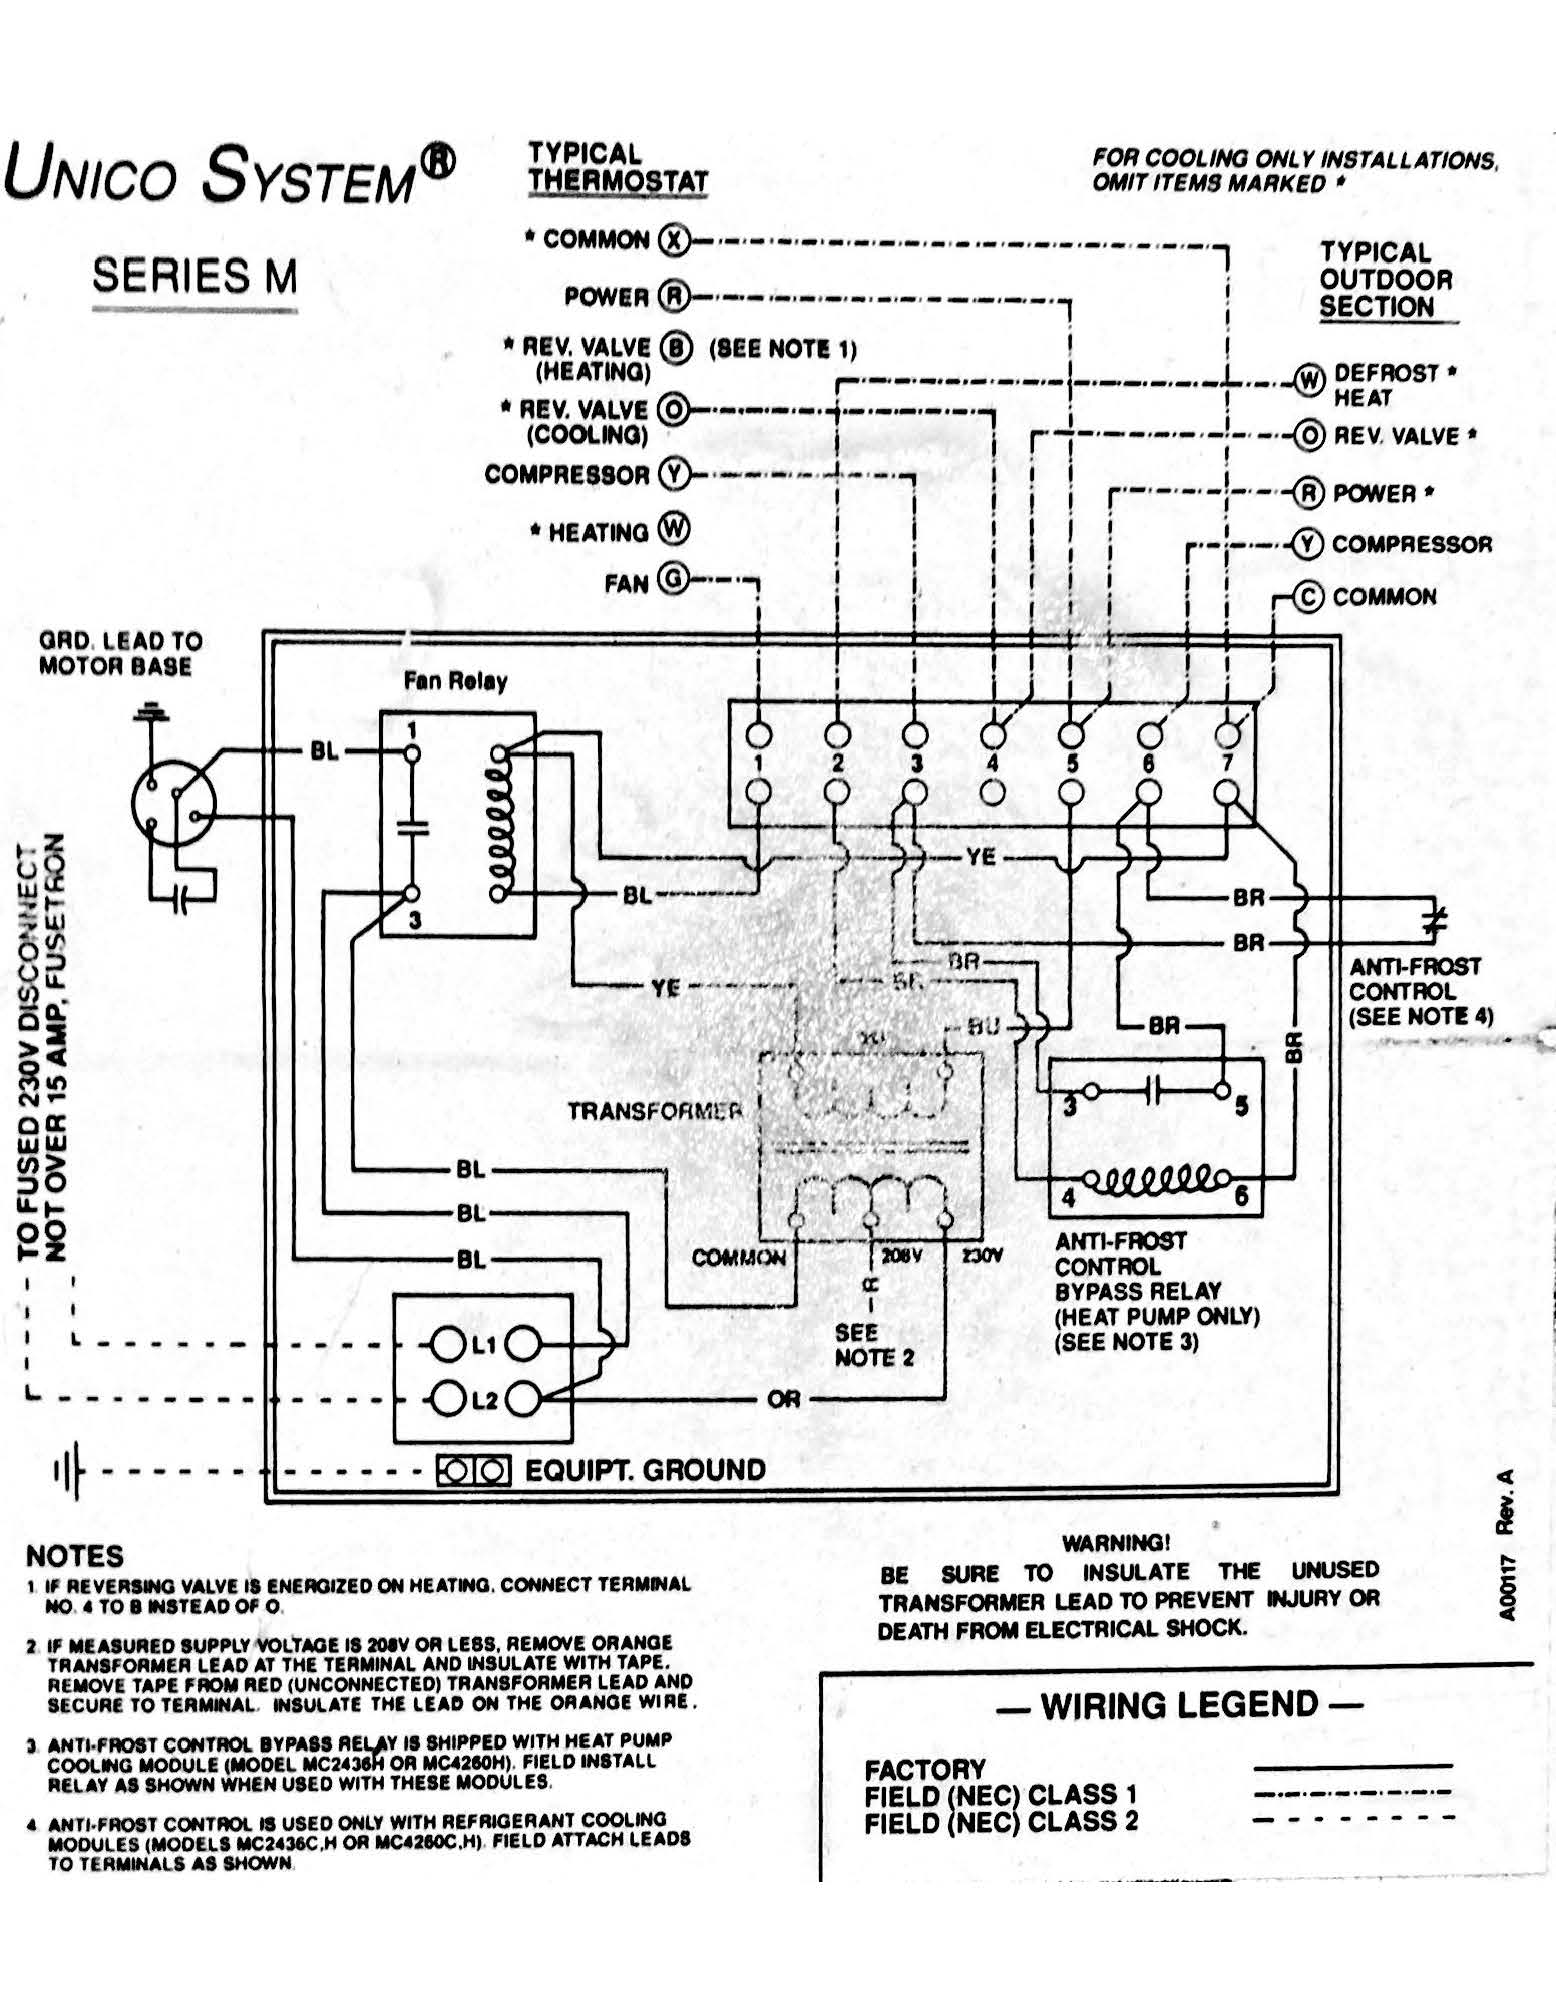 small commercial hvac diagram html